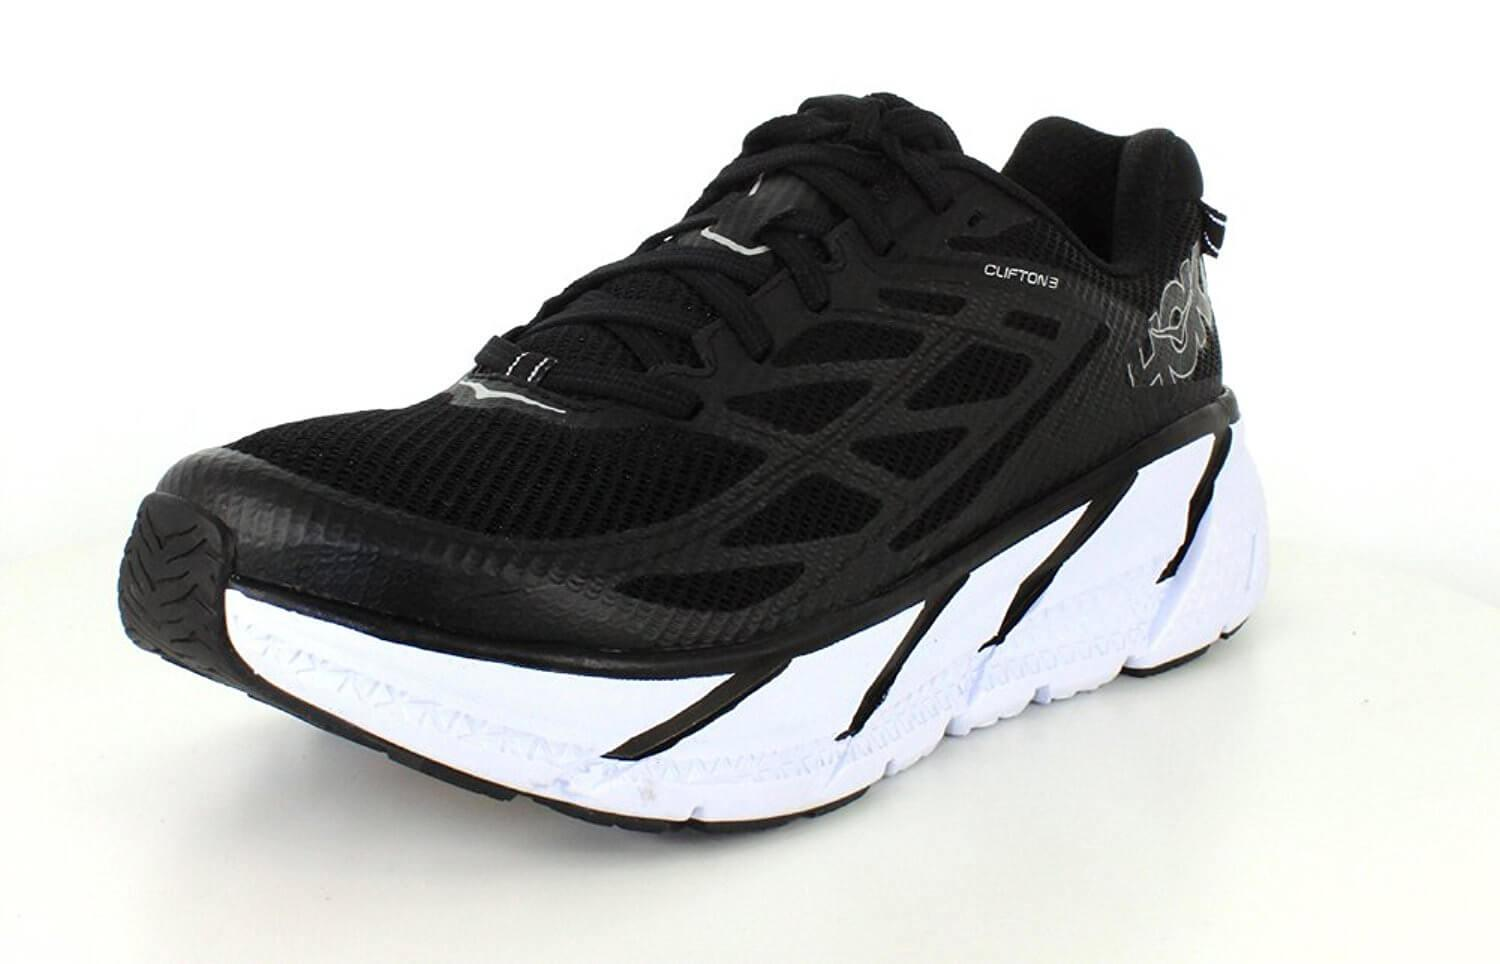 What Is The Best Running Shoe To Prevent Shin Splints